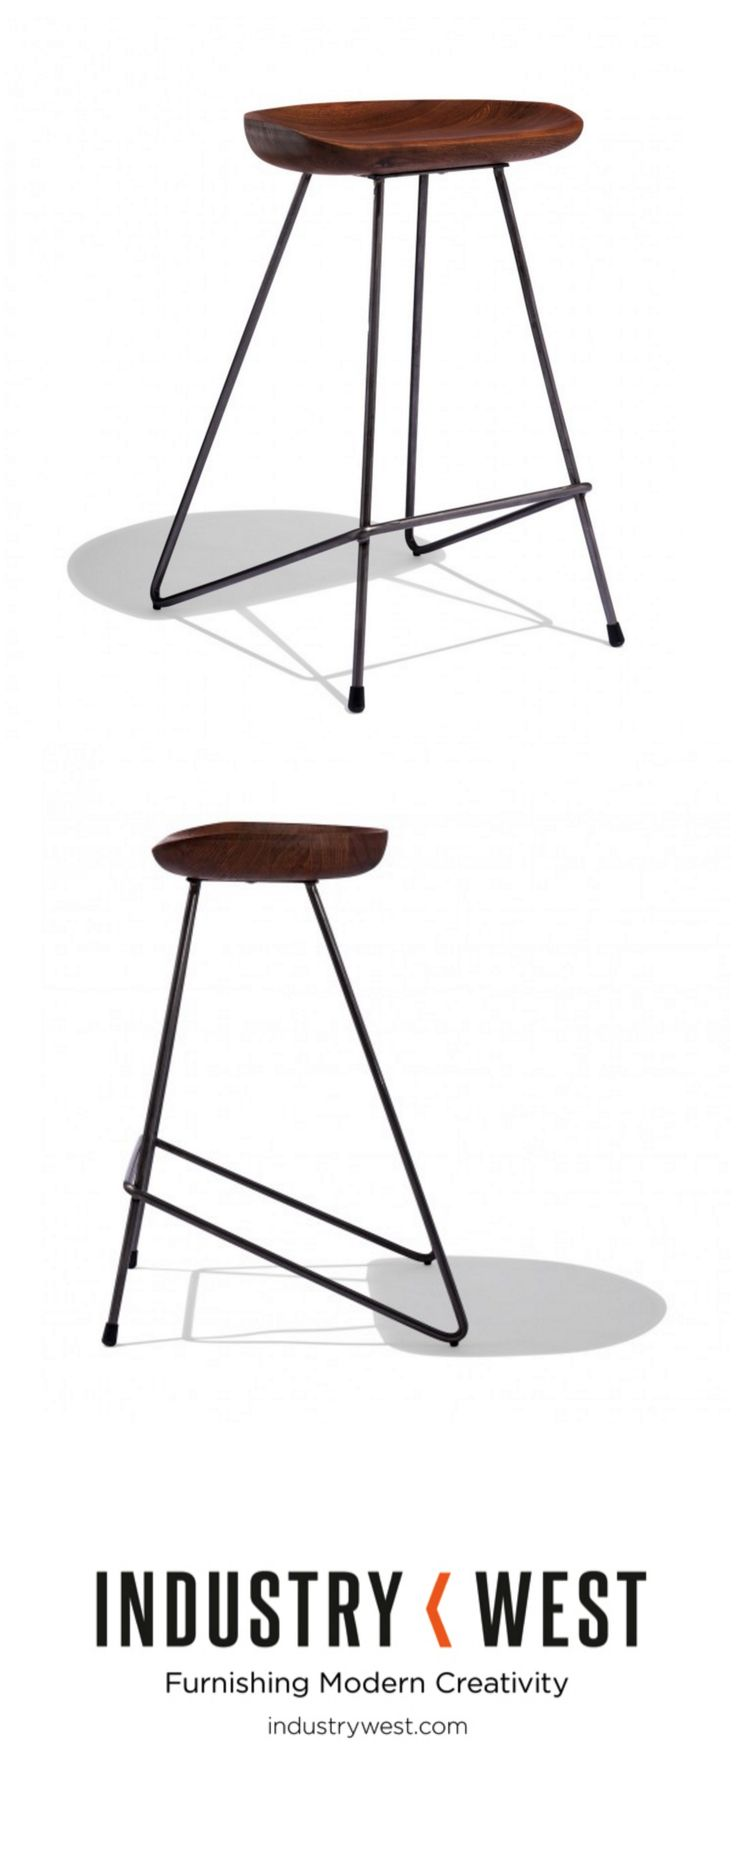 Back in stock! The Svelte Stool's hairpin form is a staple that was popularized during the post-war modern furniture movement Invented by Henry P. Glass in 1941, the hairpin legs are a true war-time innovation born out of necessity, as their design limits the amount of material needed while keeping the strength of traditional legs.